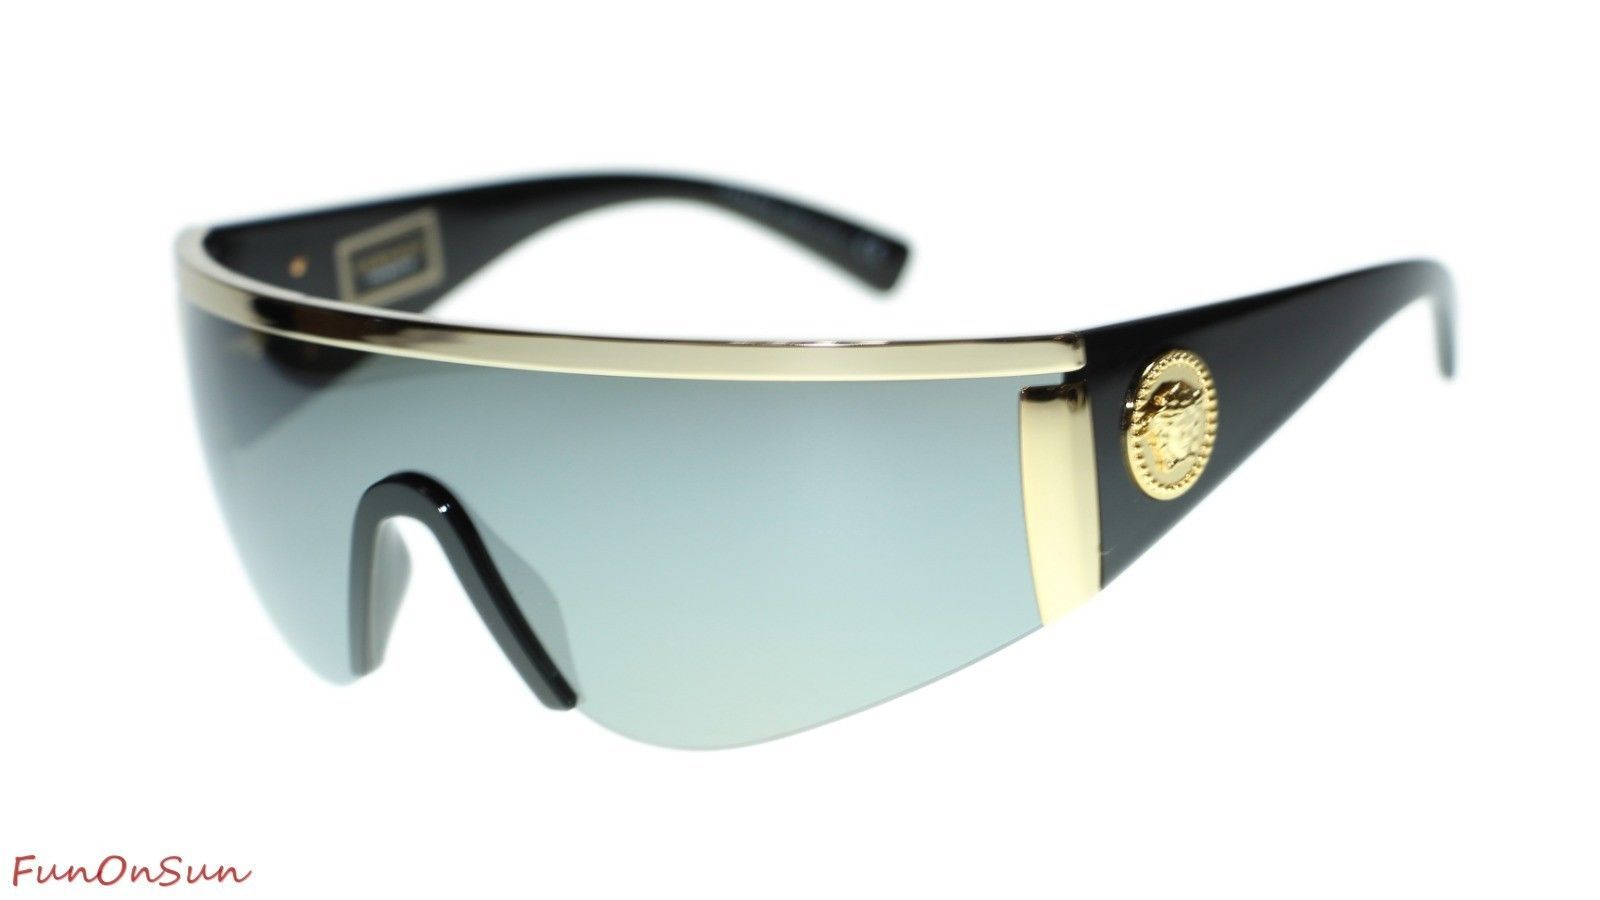 1e080096741f Versace Unisex Sunglasses VE2197 10006G Gold Grey Mirror Silver Lens 40mm -  $198.85